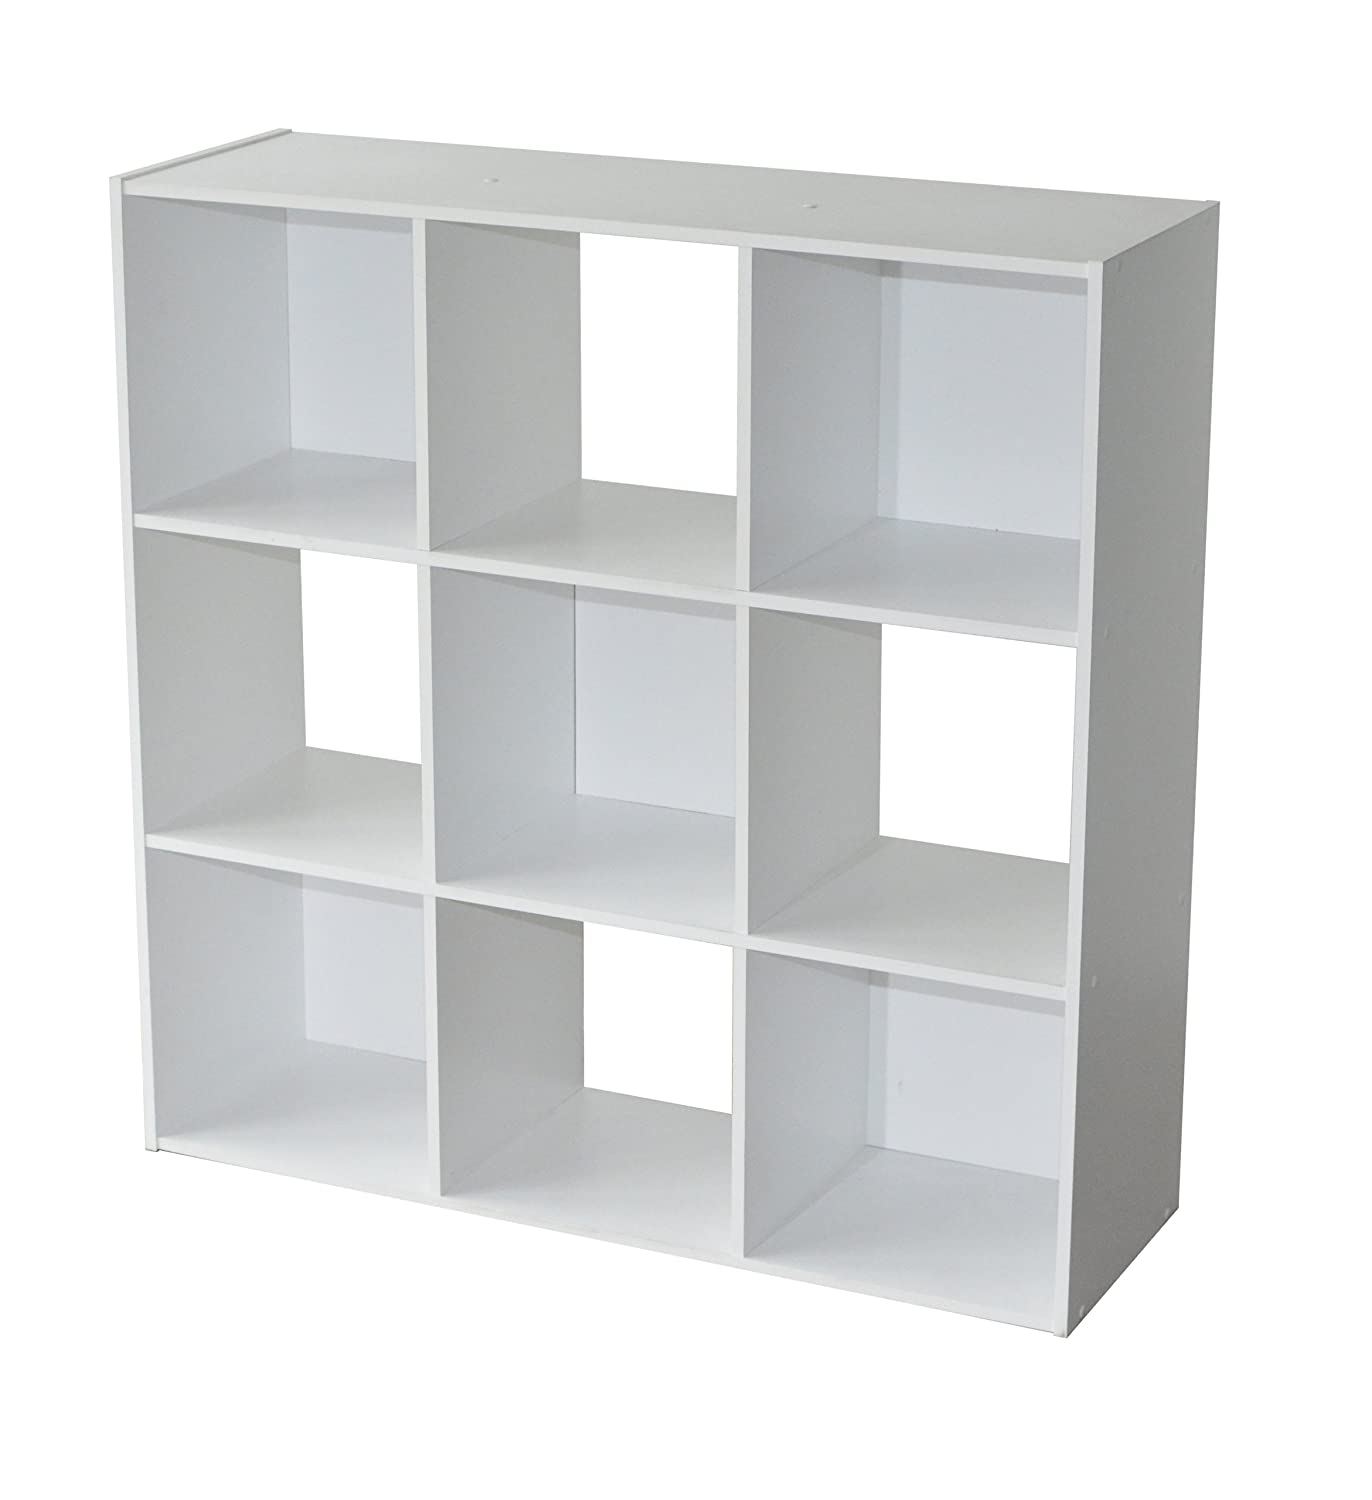 Cube storage shelf display shelving unit bookcase cabinet for Meuble 12 cases